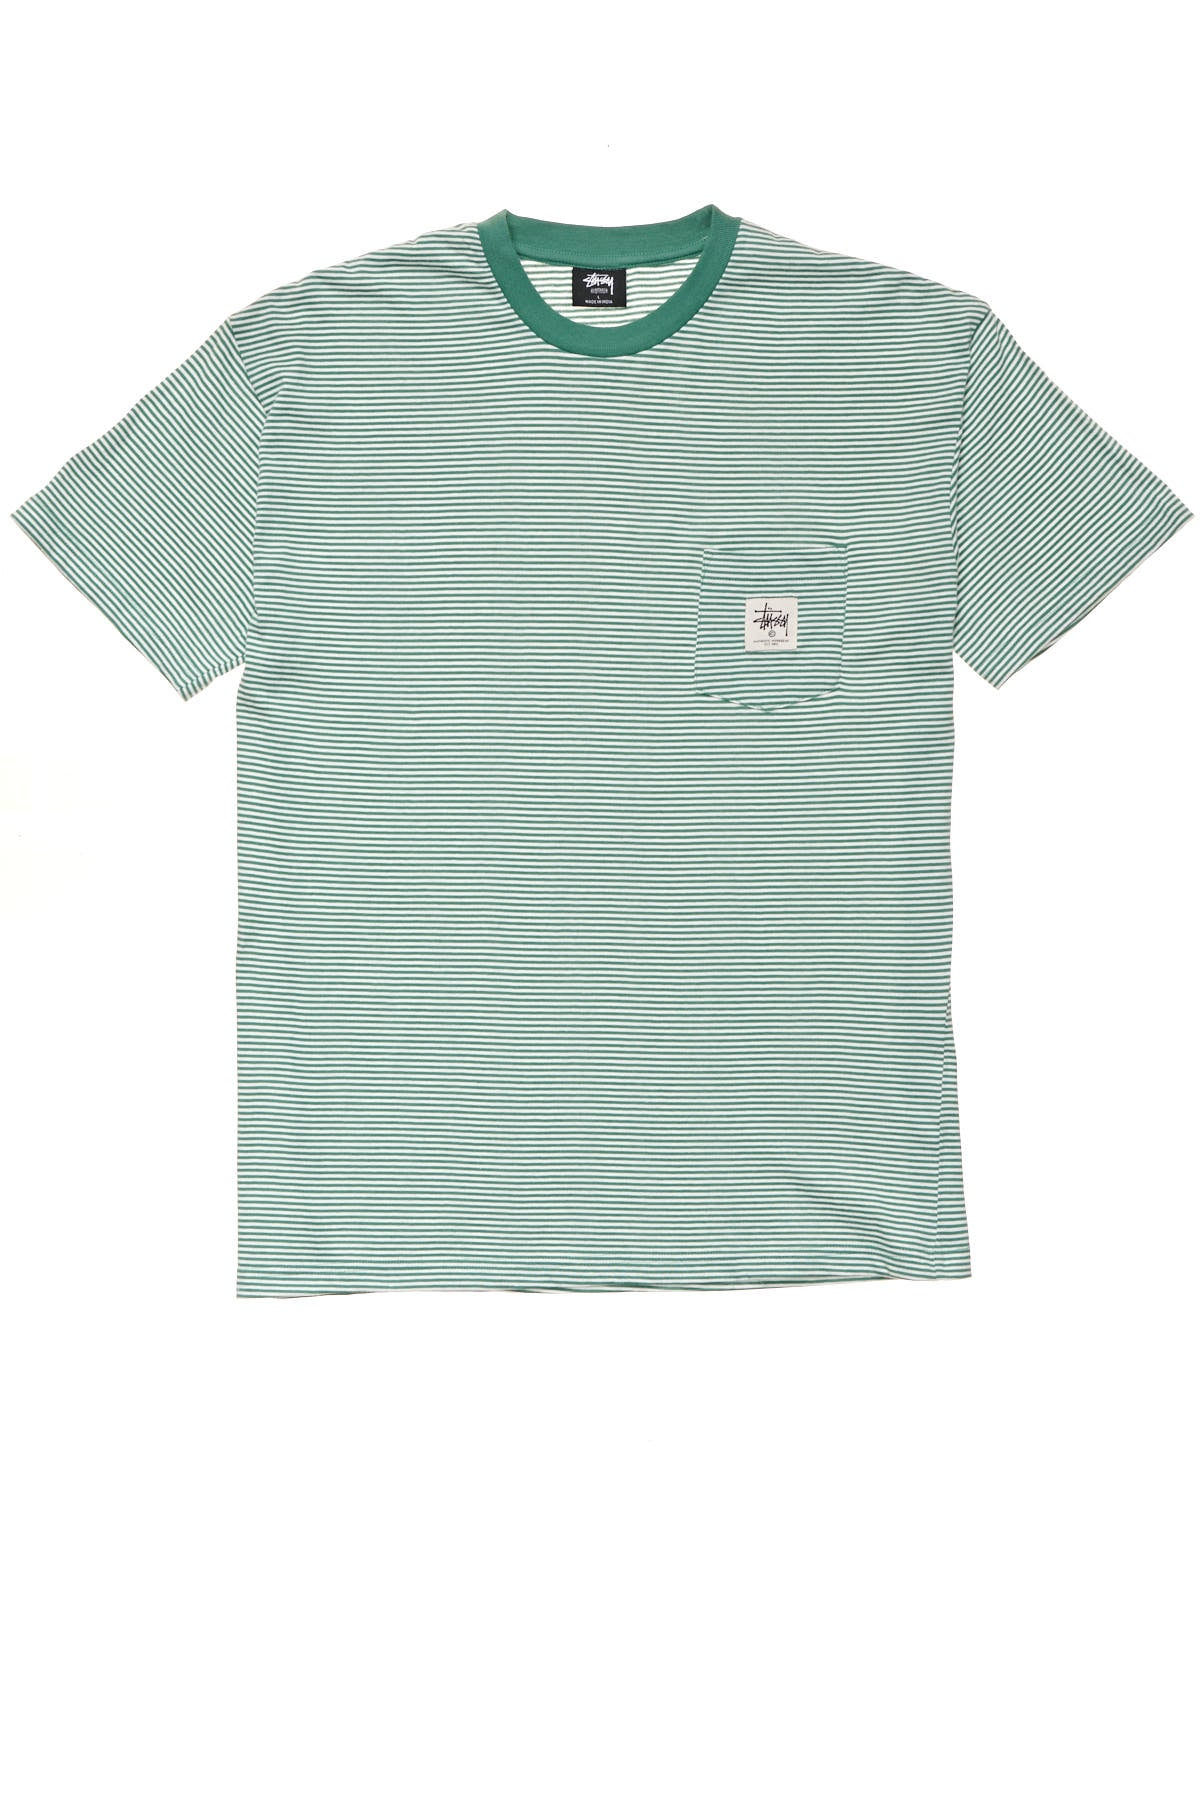 Authentic YD Pocket SS Tee